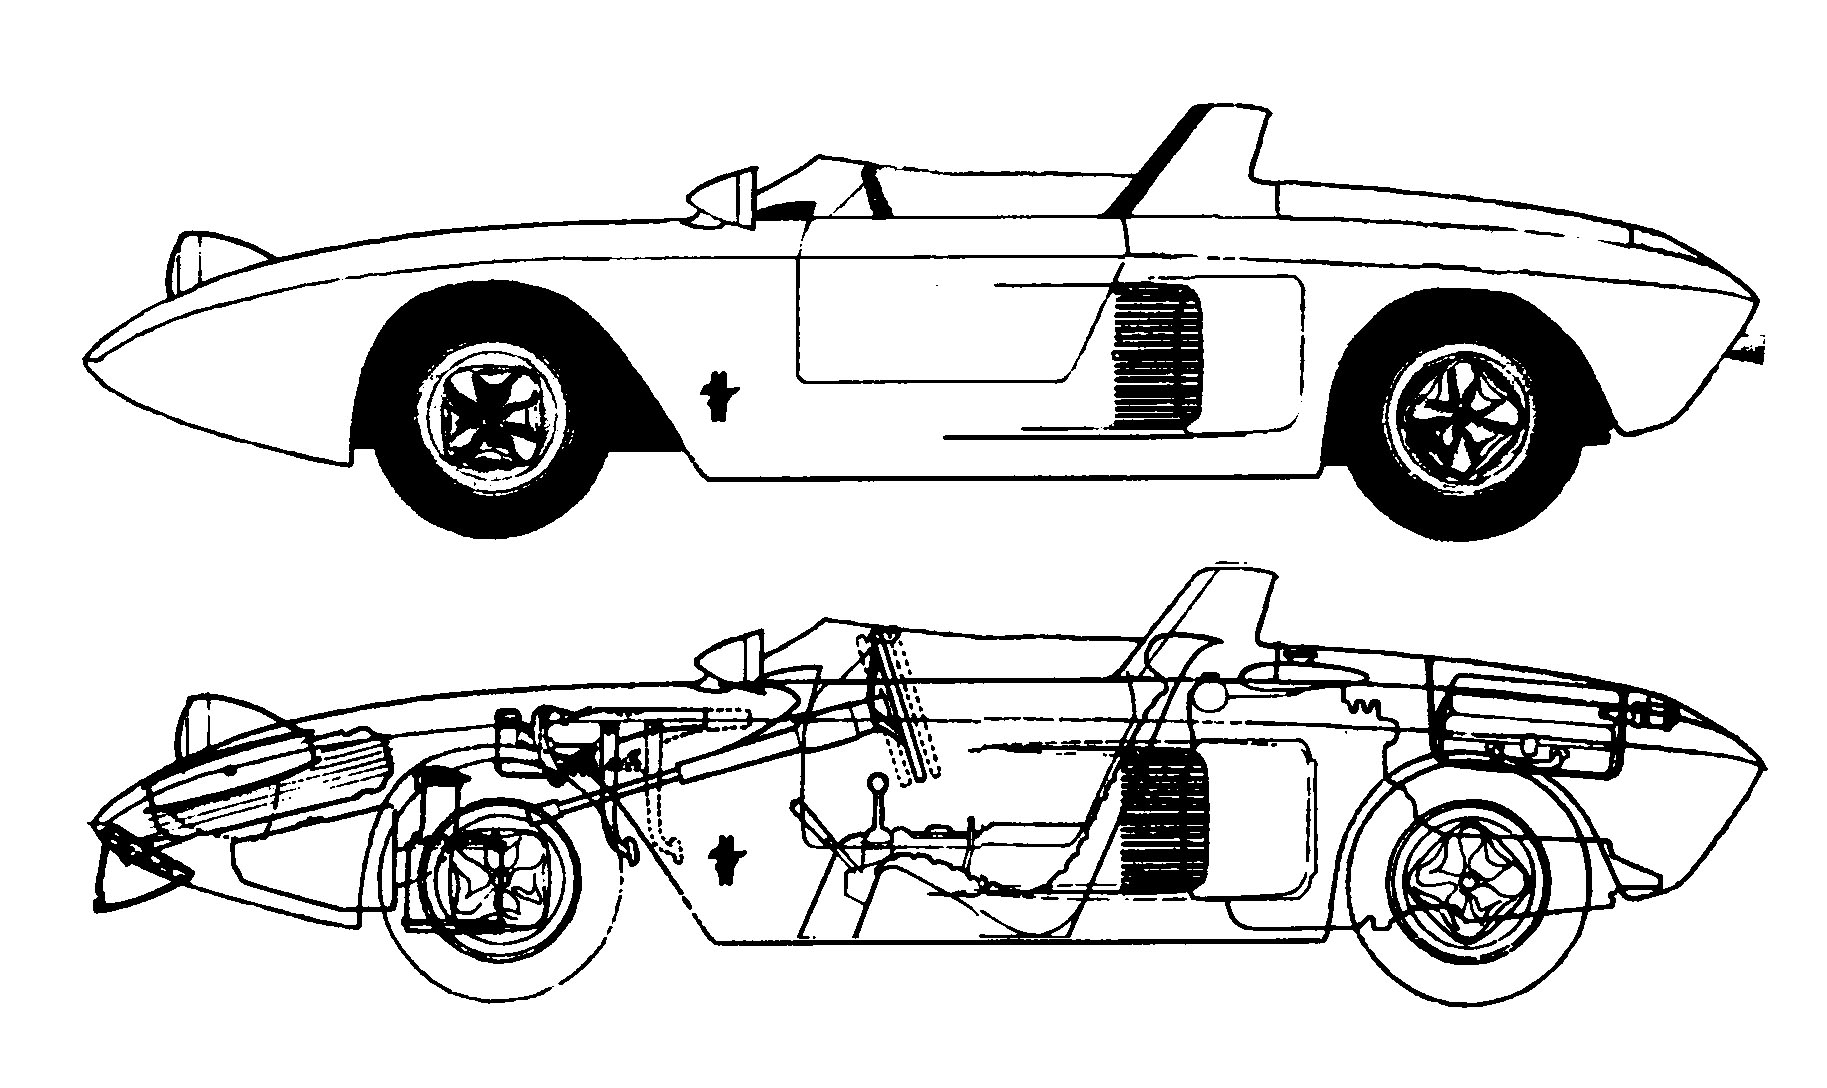 Ford Mustang I Prototype